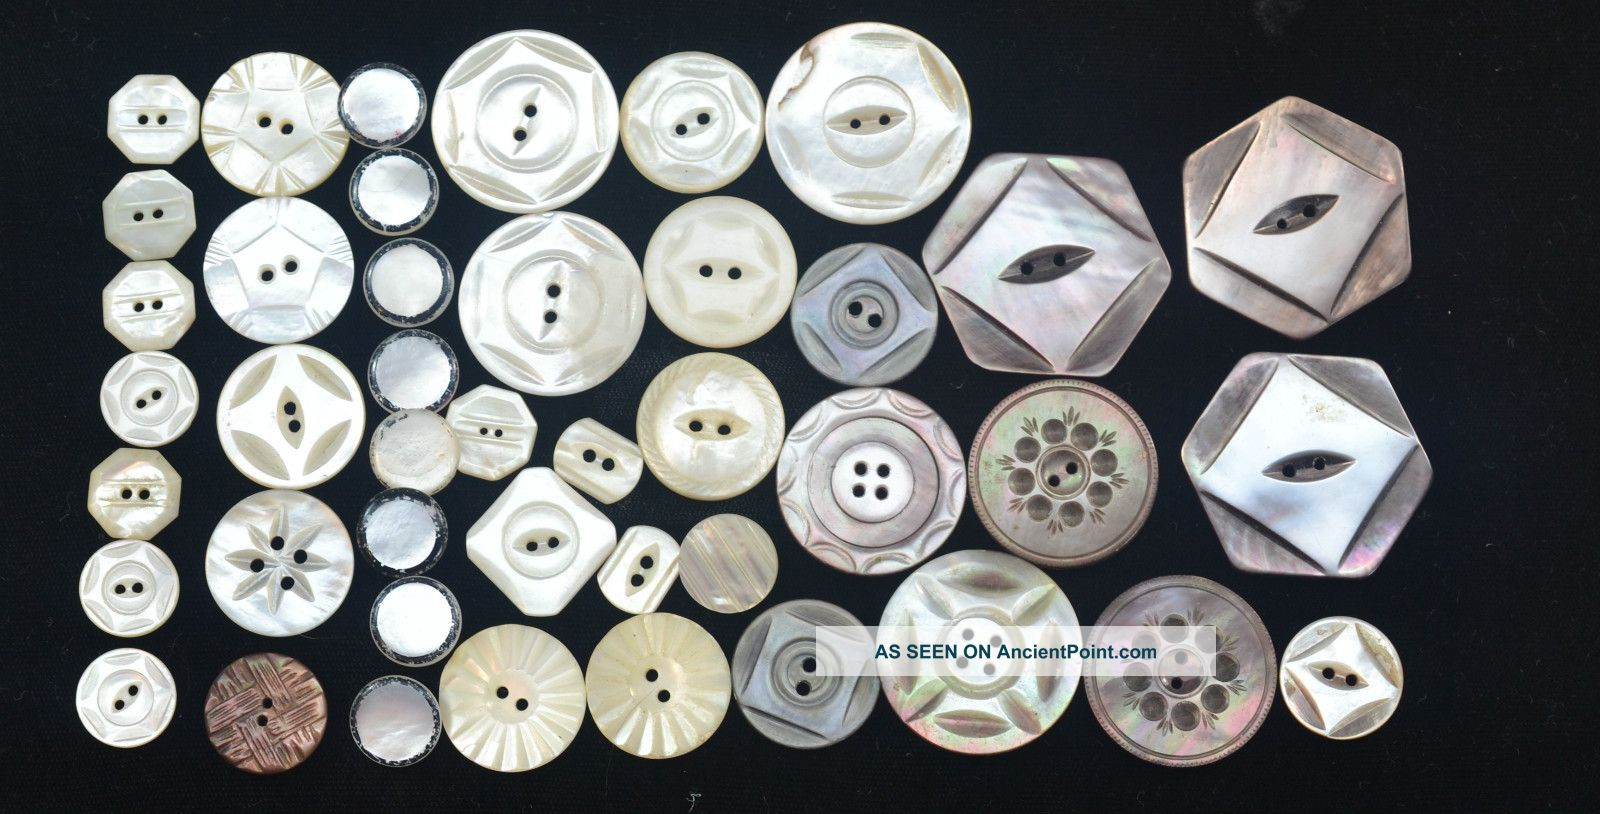 43 Antique Buttons Carved Mother Of Pearl & Black Abalone Sm - Med 15 Buttons photo